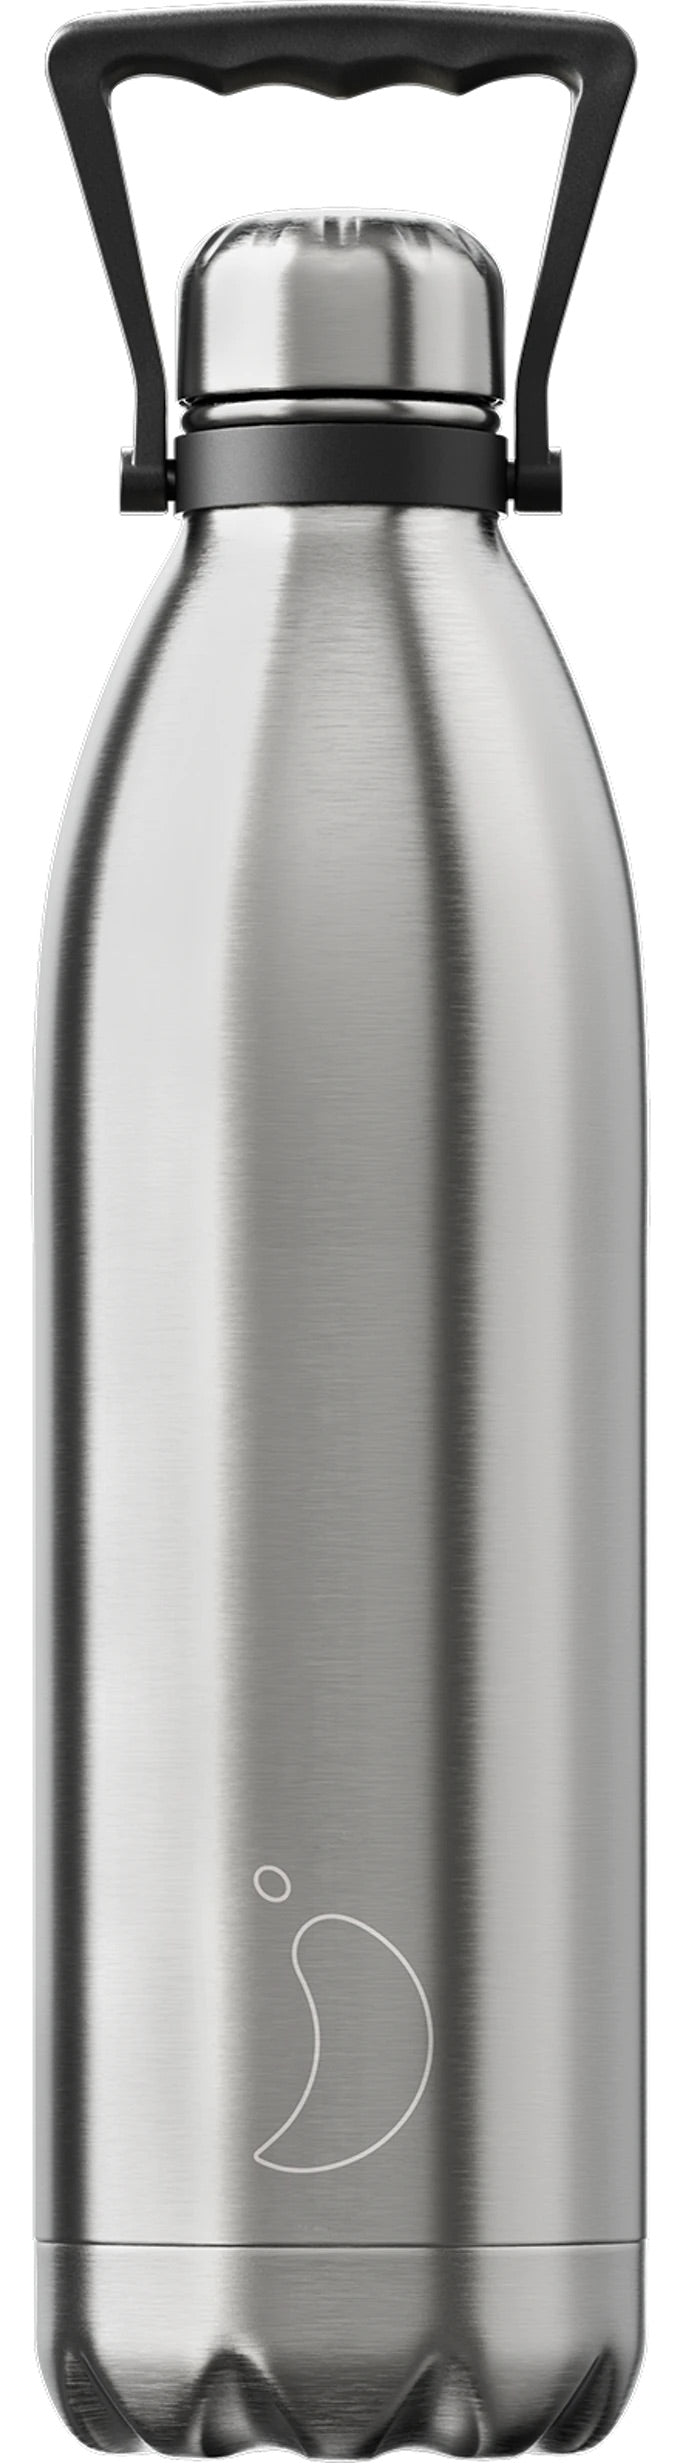 Original edition stainless steel Chilly bottle - 1.8 L